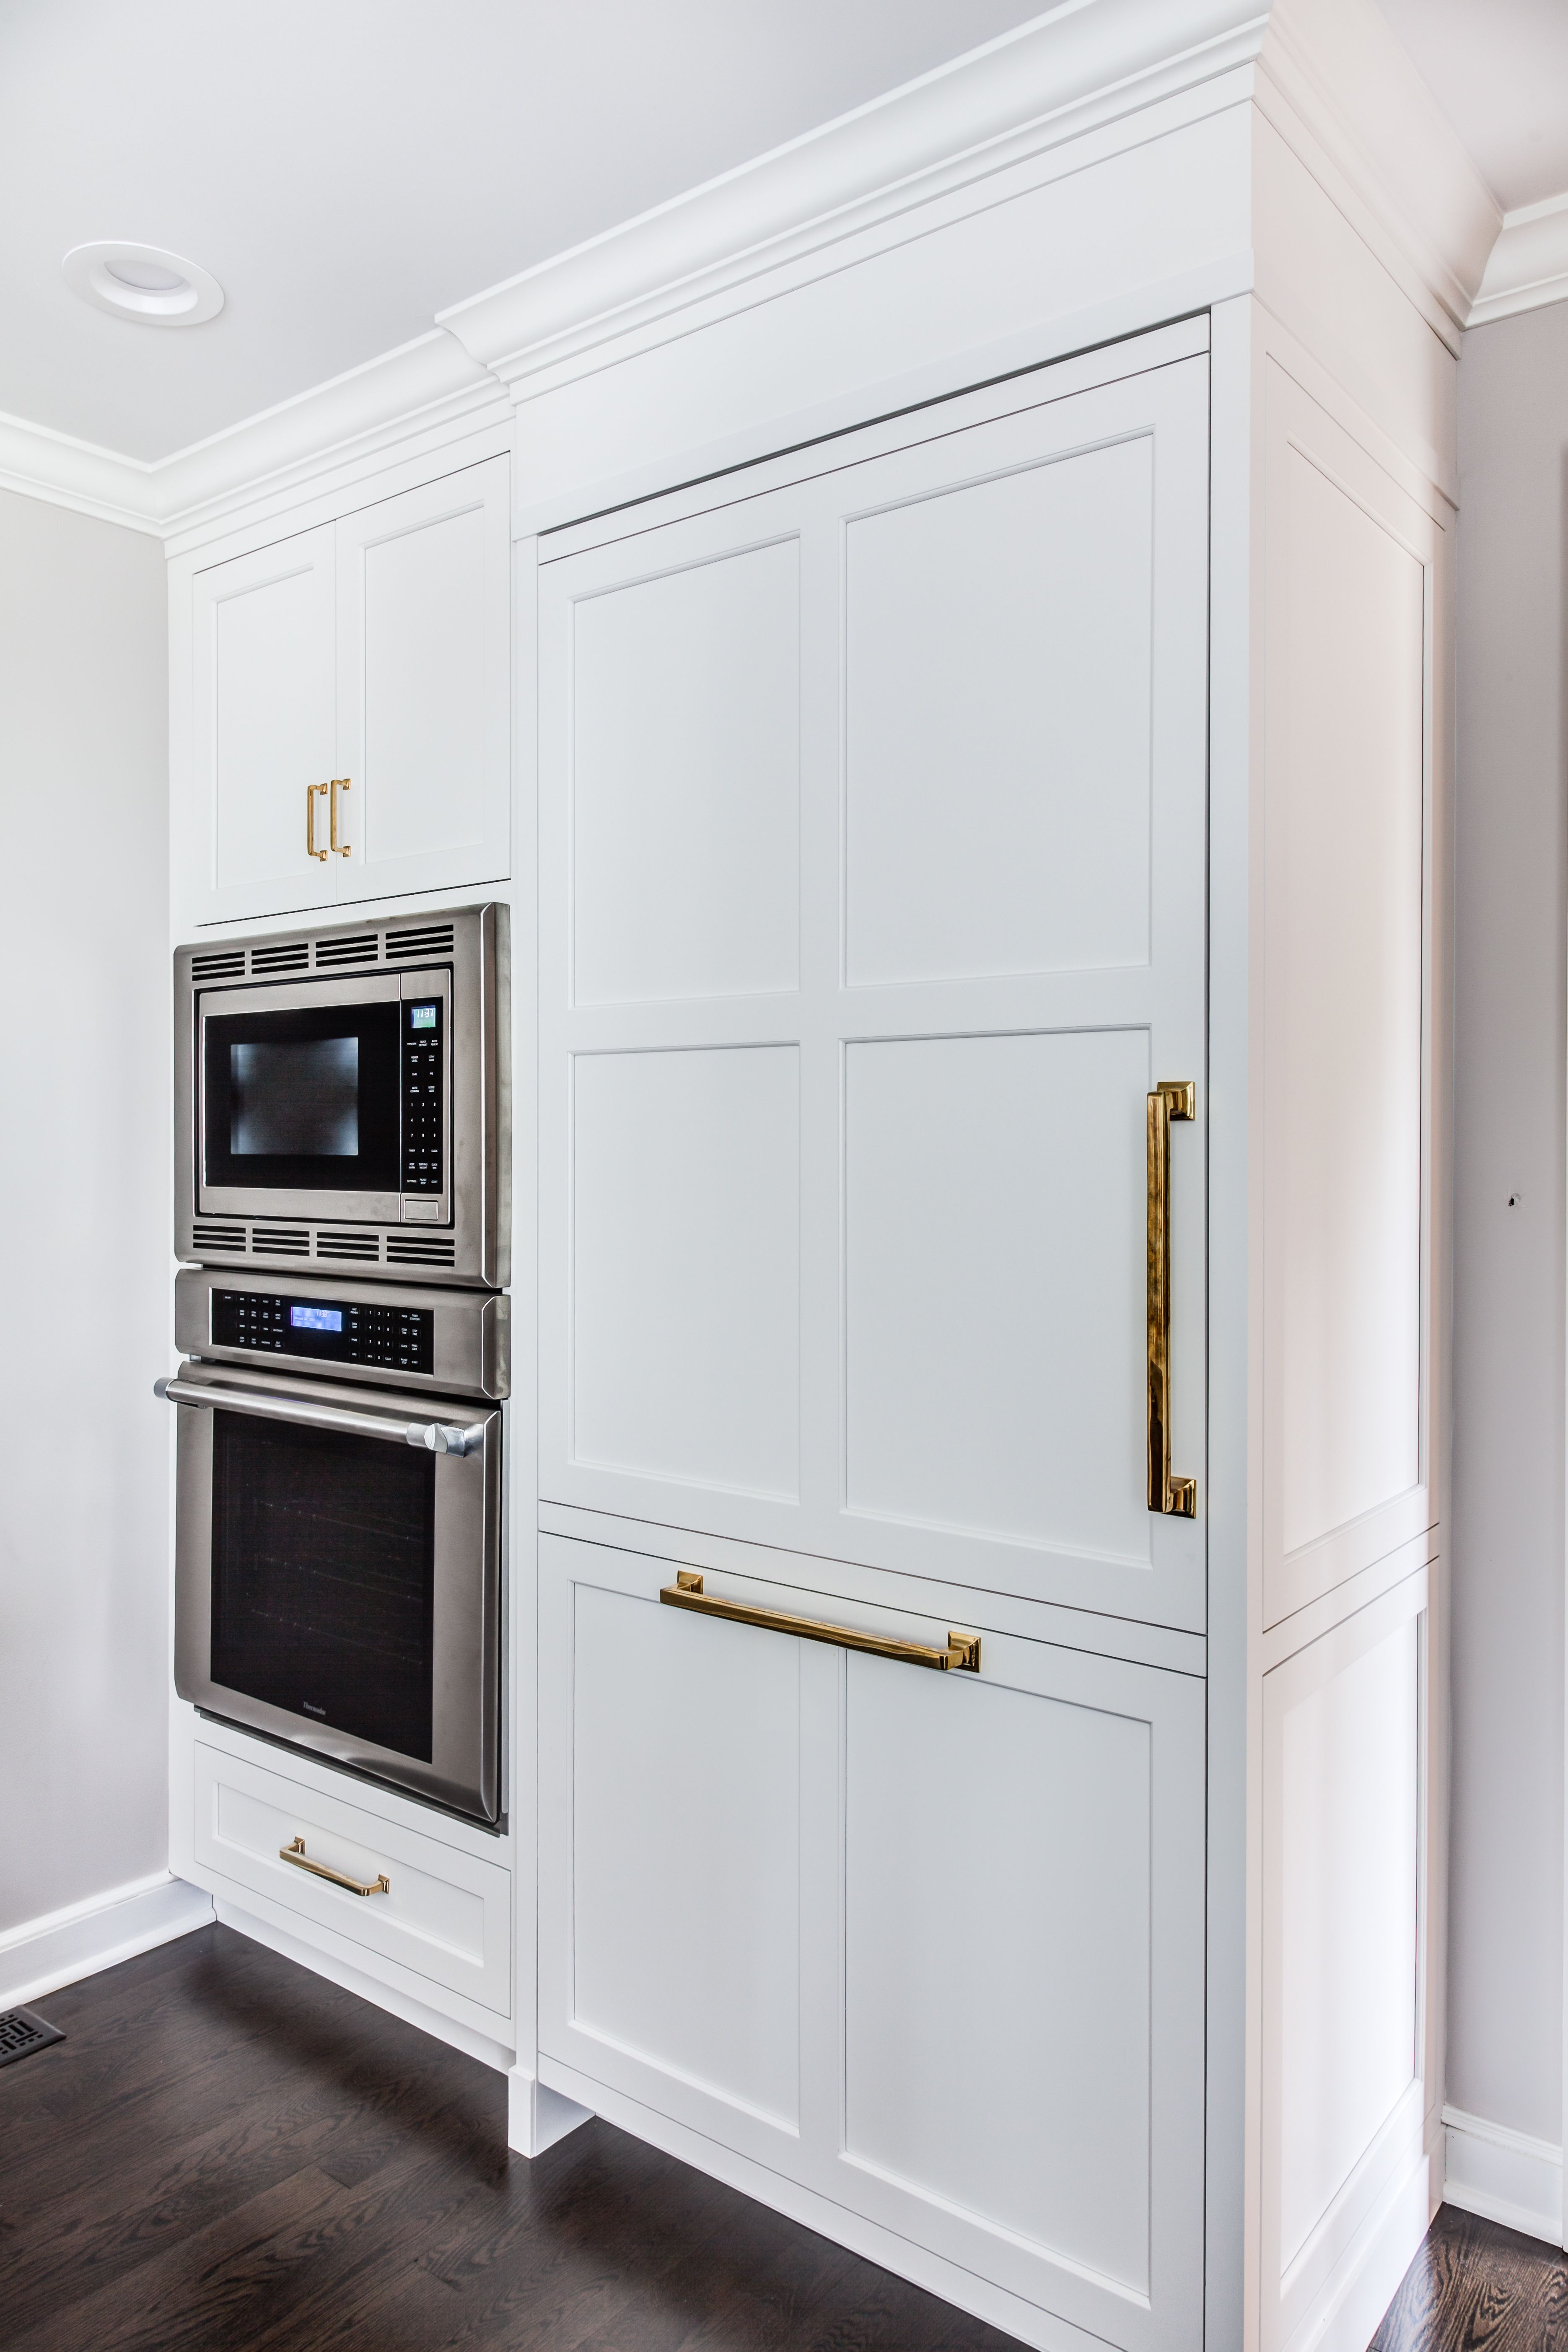 Thermador Wall Oven And Built In Microwave Next To Fully